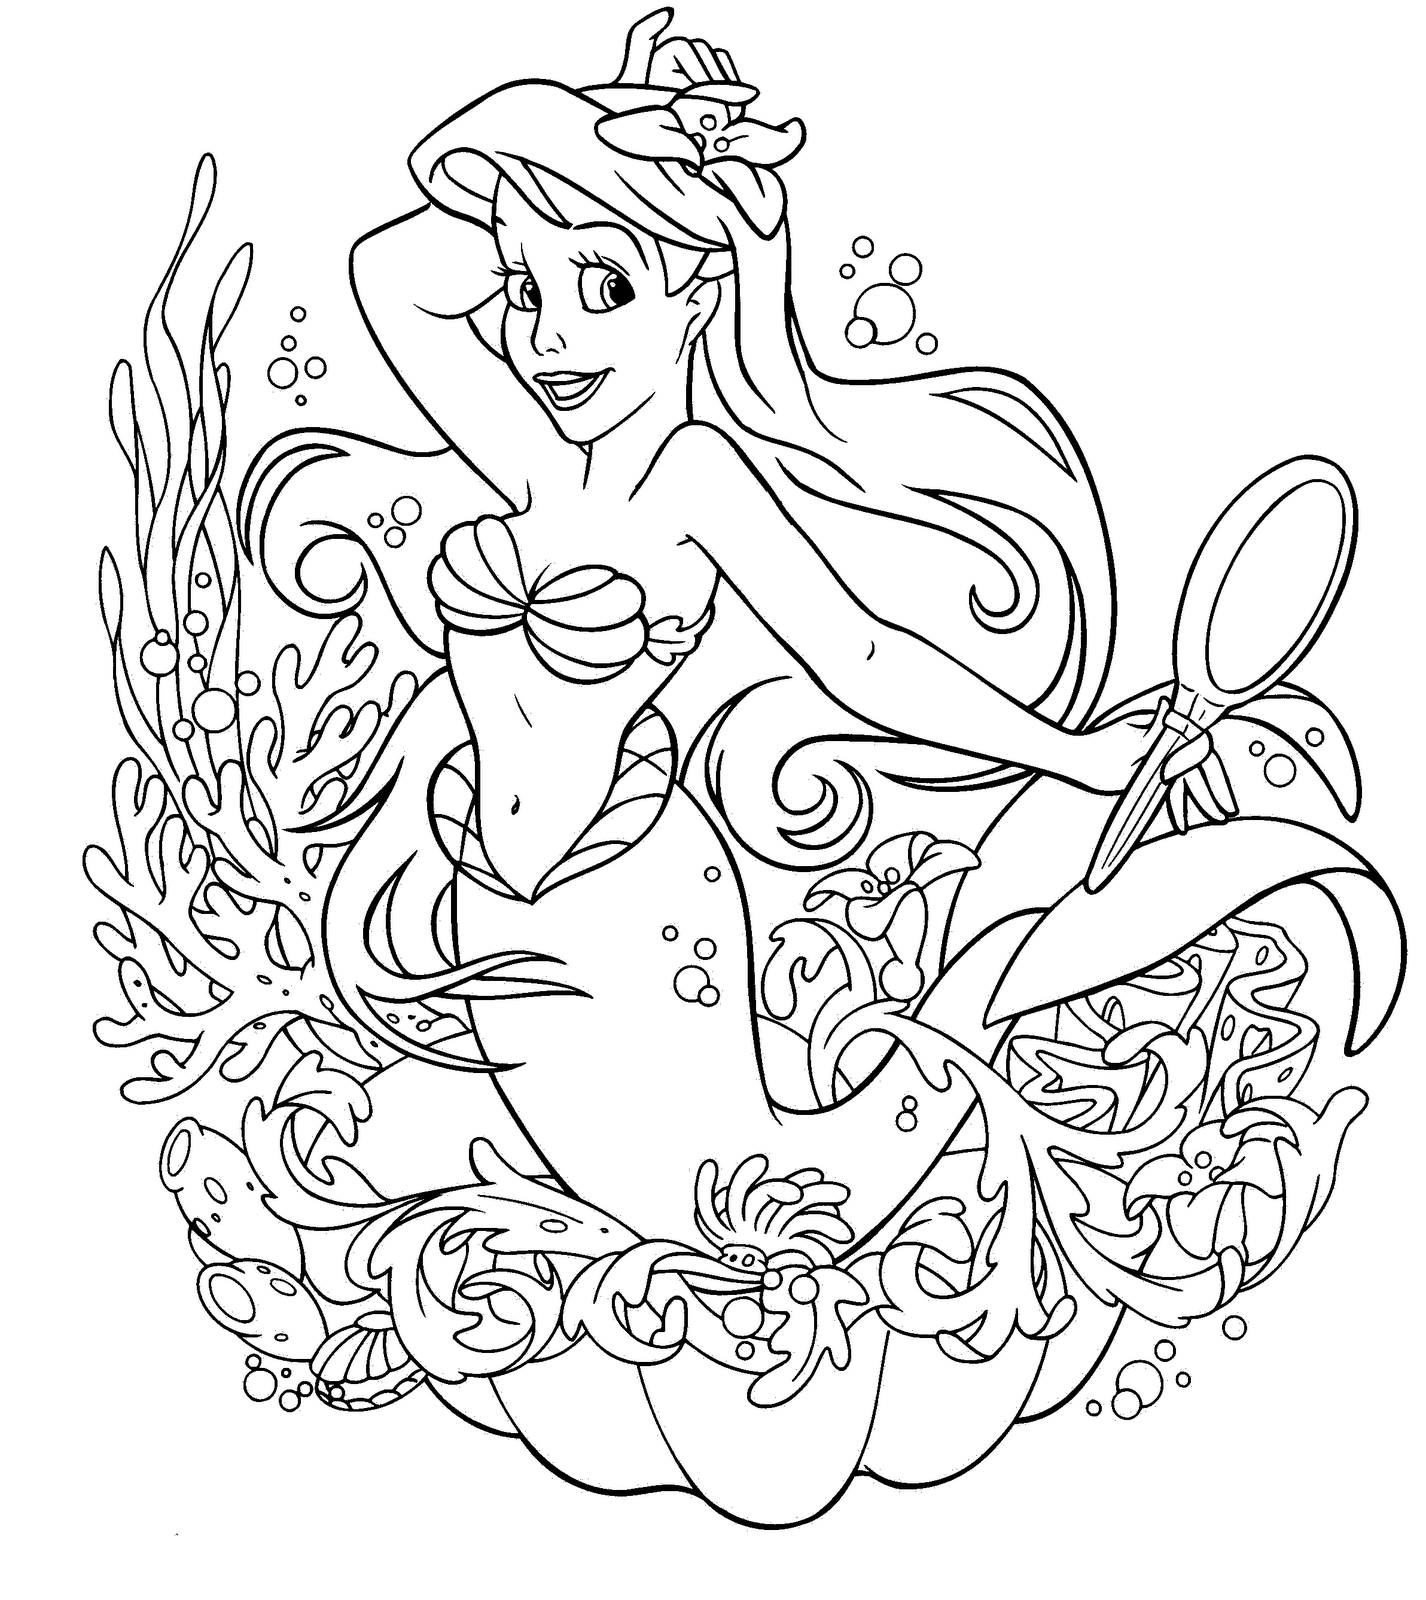 ariel coloring pages print download find the suitable little mermaid ariel coloring pages